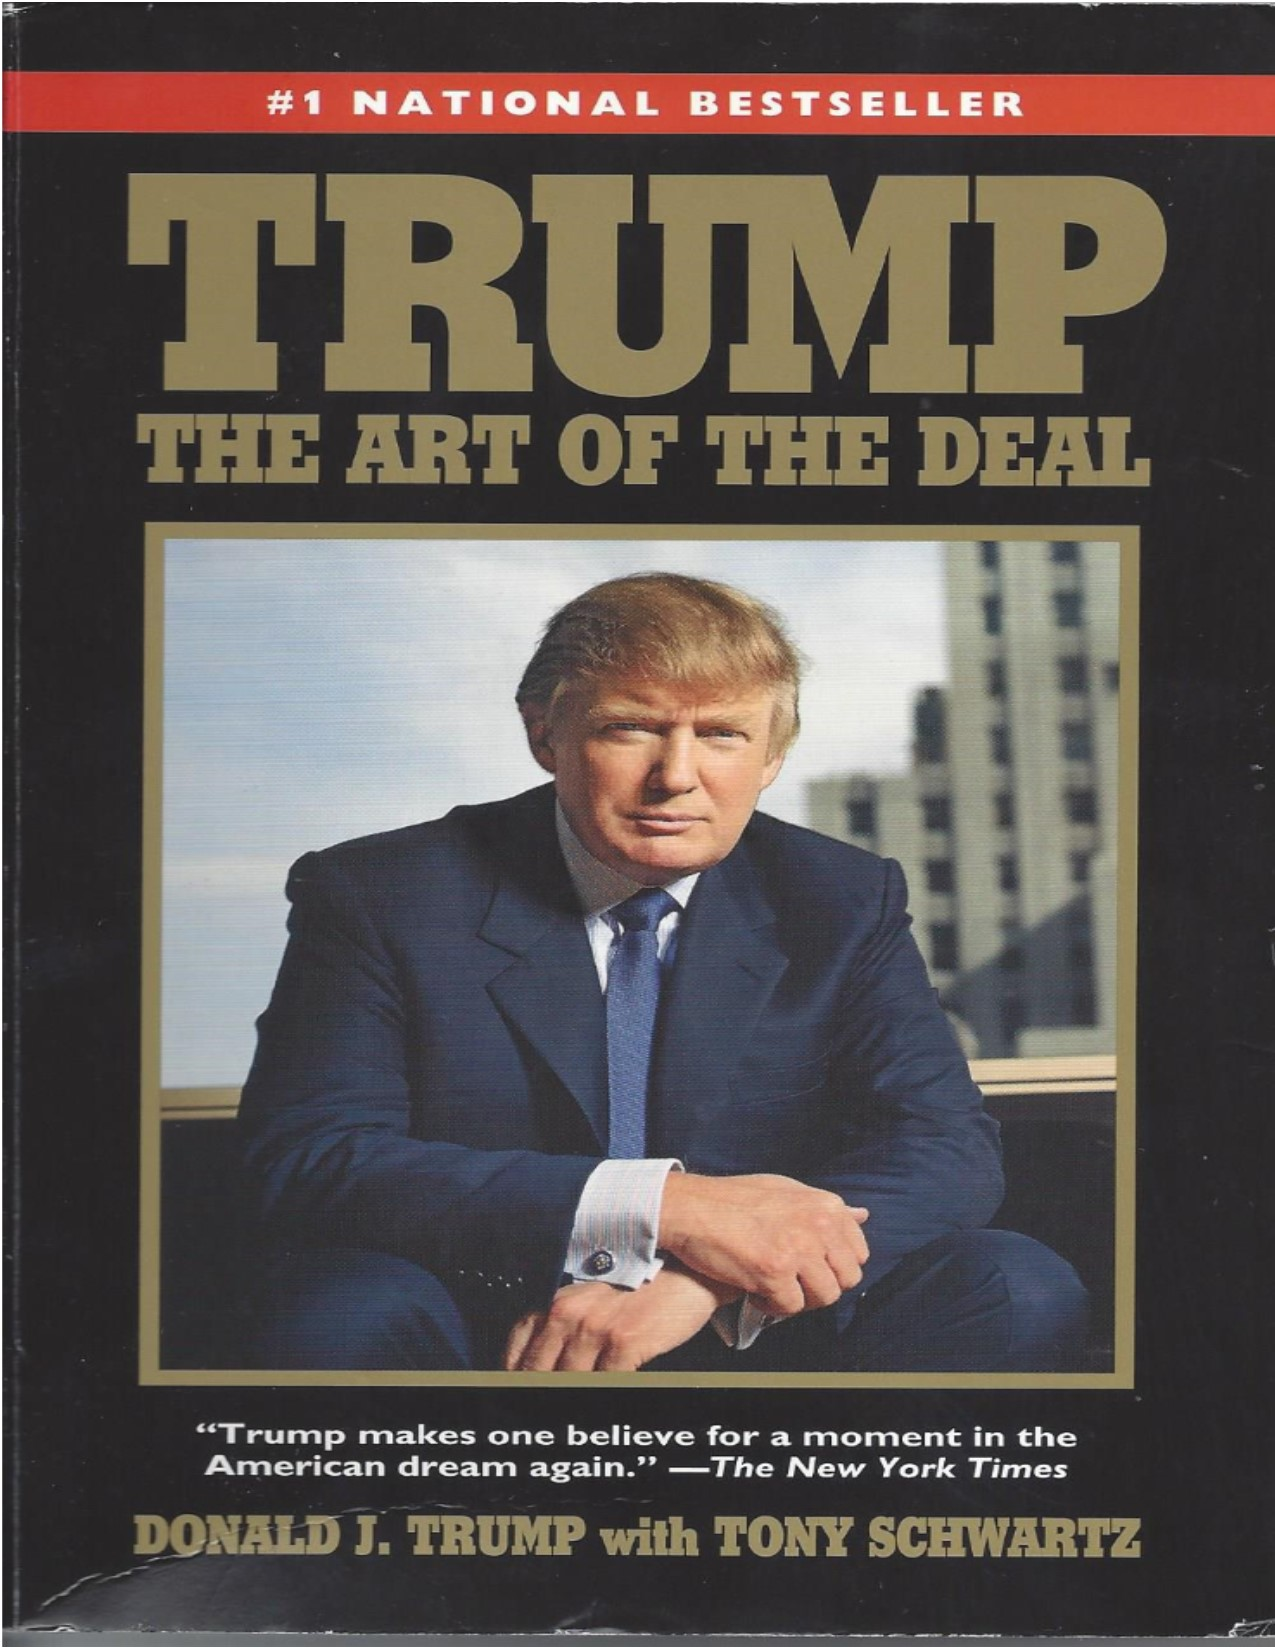 Trump-art-of-the-deal-Cover.jpg